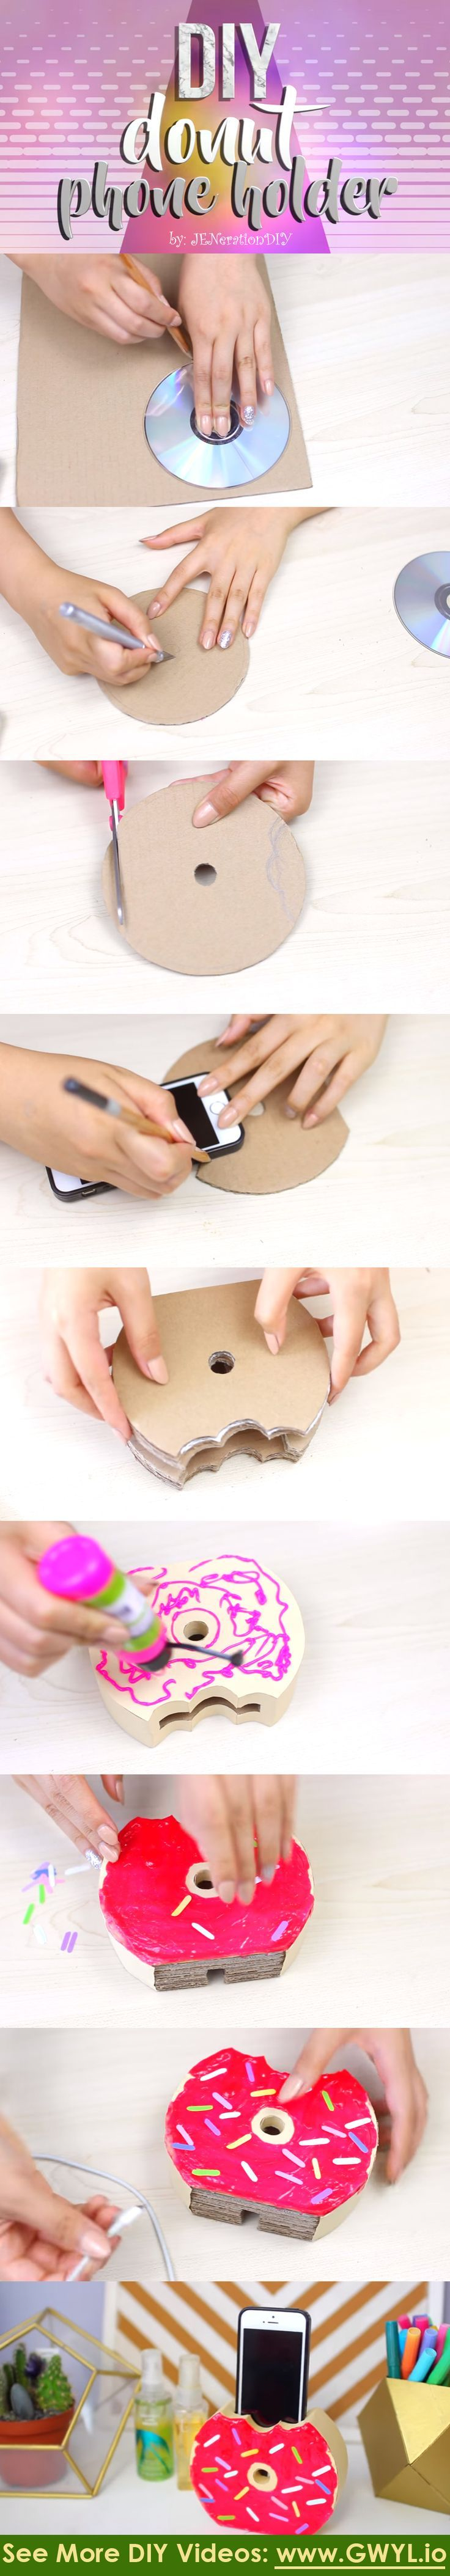 See video and written instructions here==> | Easy-To-Do Donut Phone Charger/Holder | http://gwyl.io/easy-donut-phone-chargerholder/